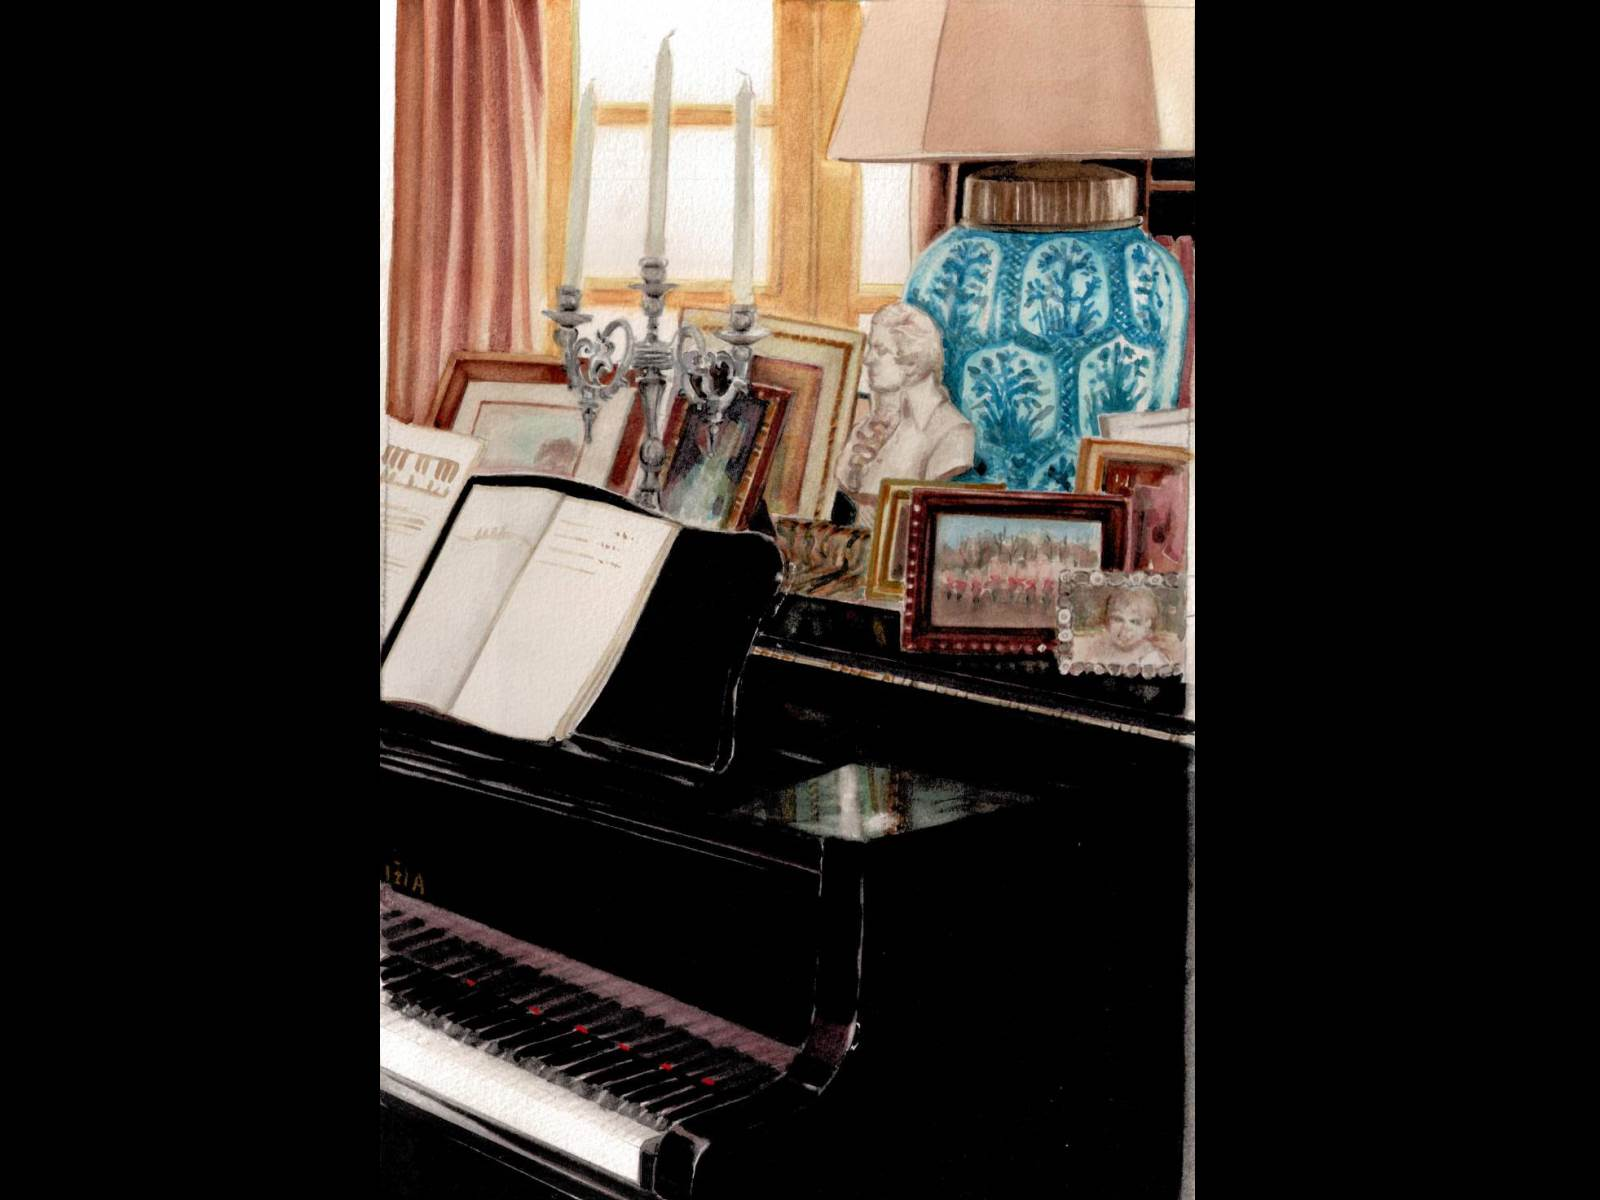 Interno con pianoforte (25x37)